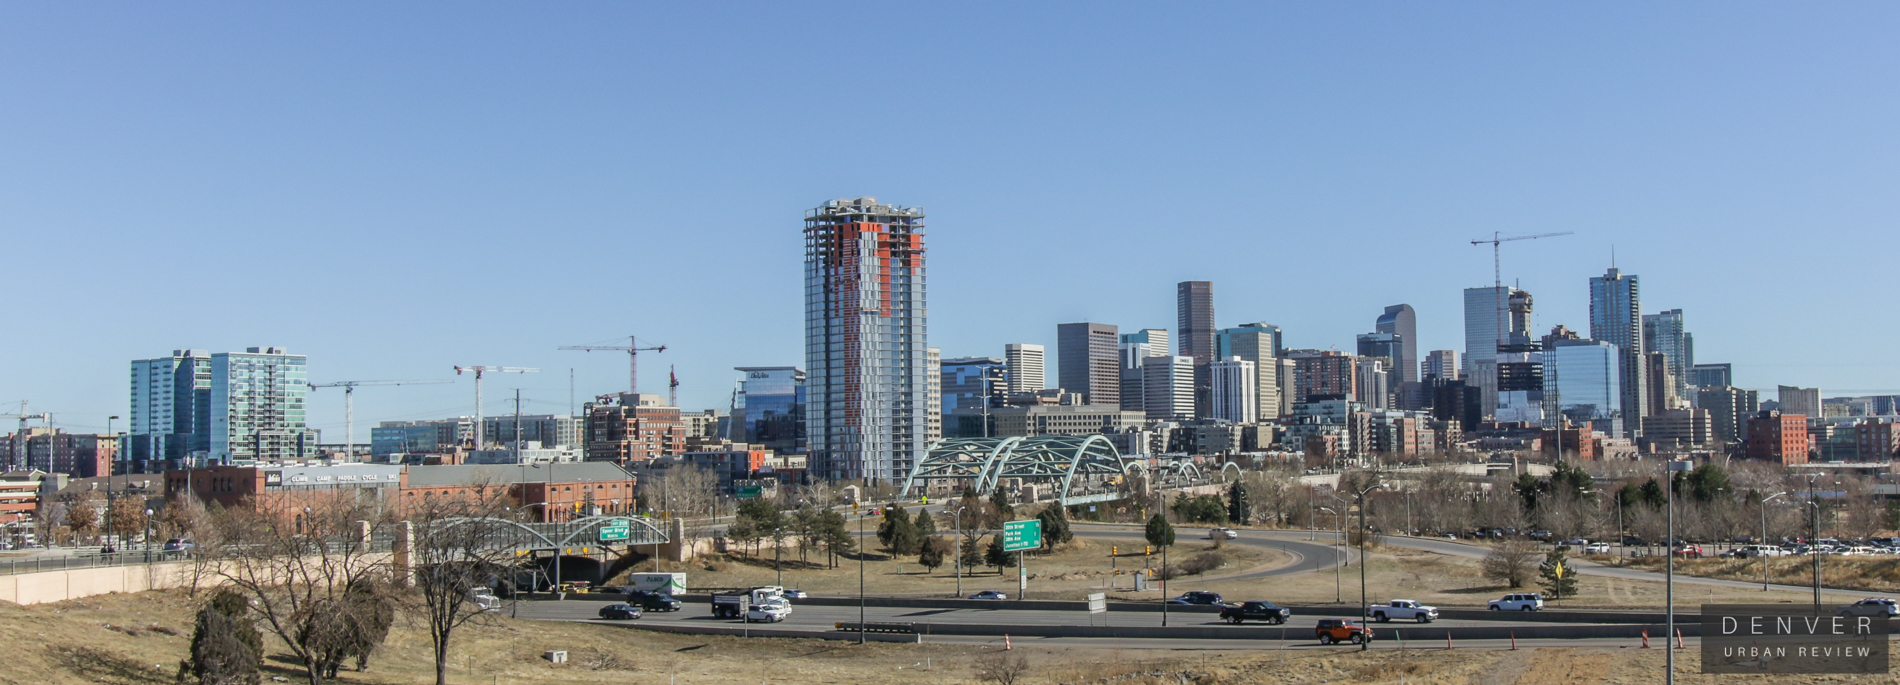 Downtown Denver Construction Update Denver Urban Review